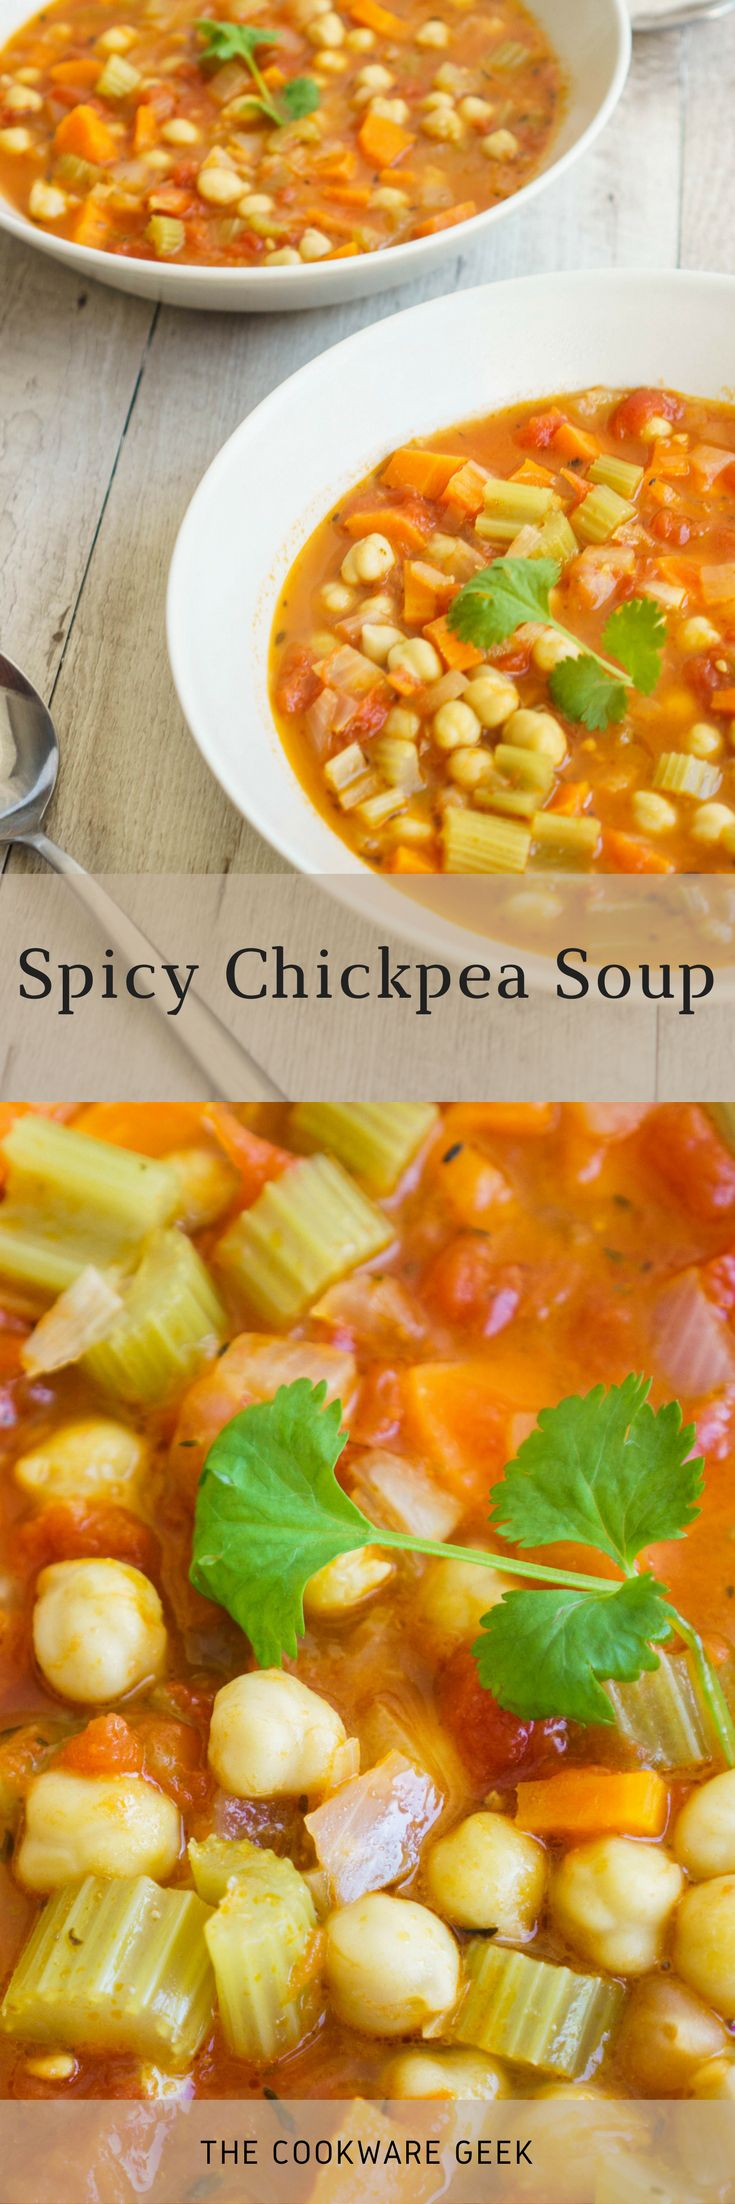 Spicy Chickpea Soup | The Cookware Geek